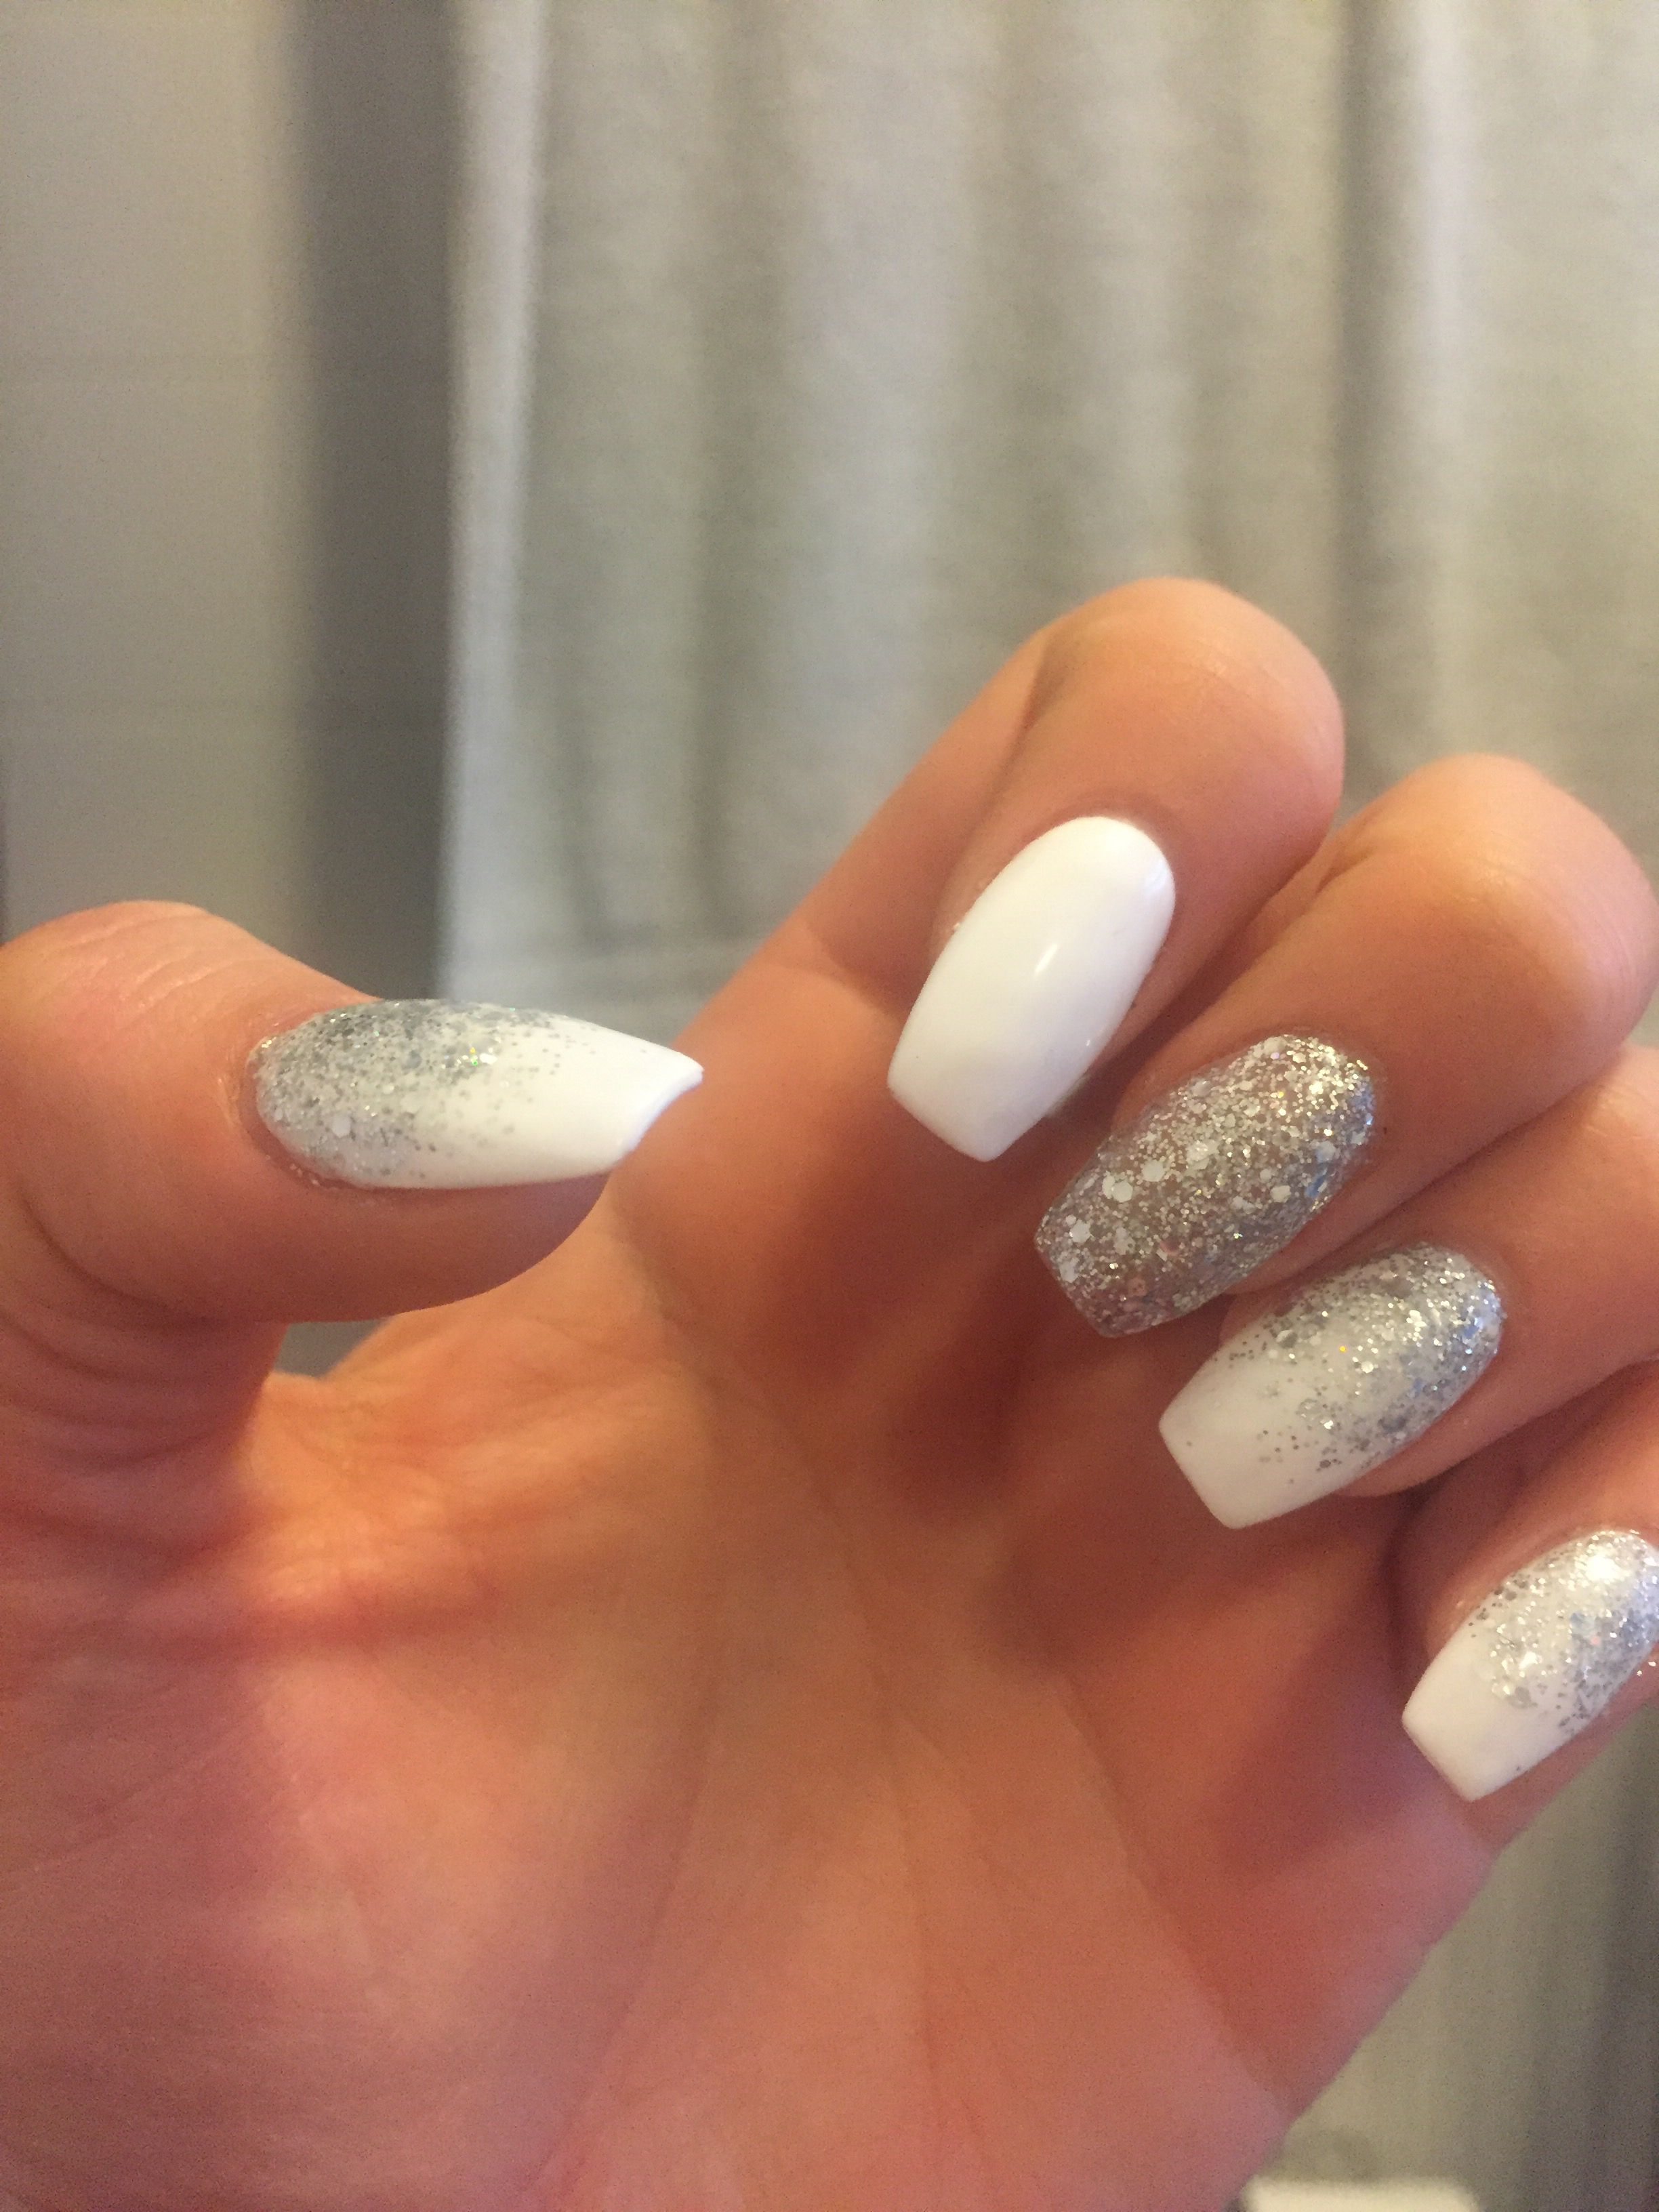 White And Silver Nails With Design Gel Polish Glitter Coffin Shape Nail Art Acrylic Brig White And Silver Nails Silver Nail Designs Silver Nails